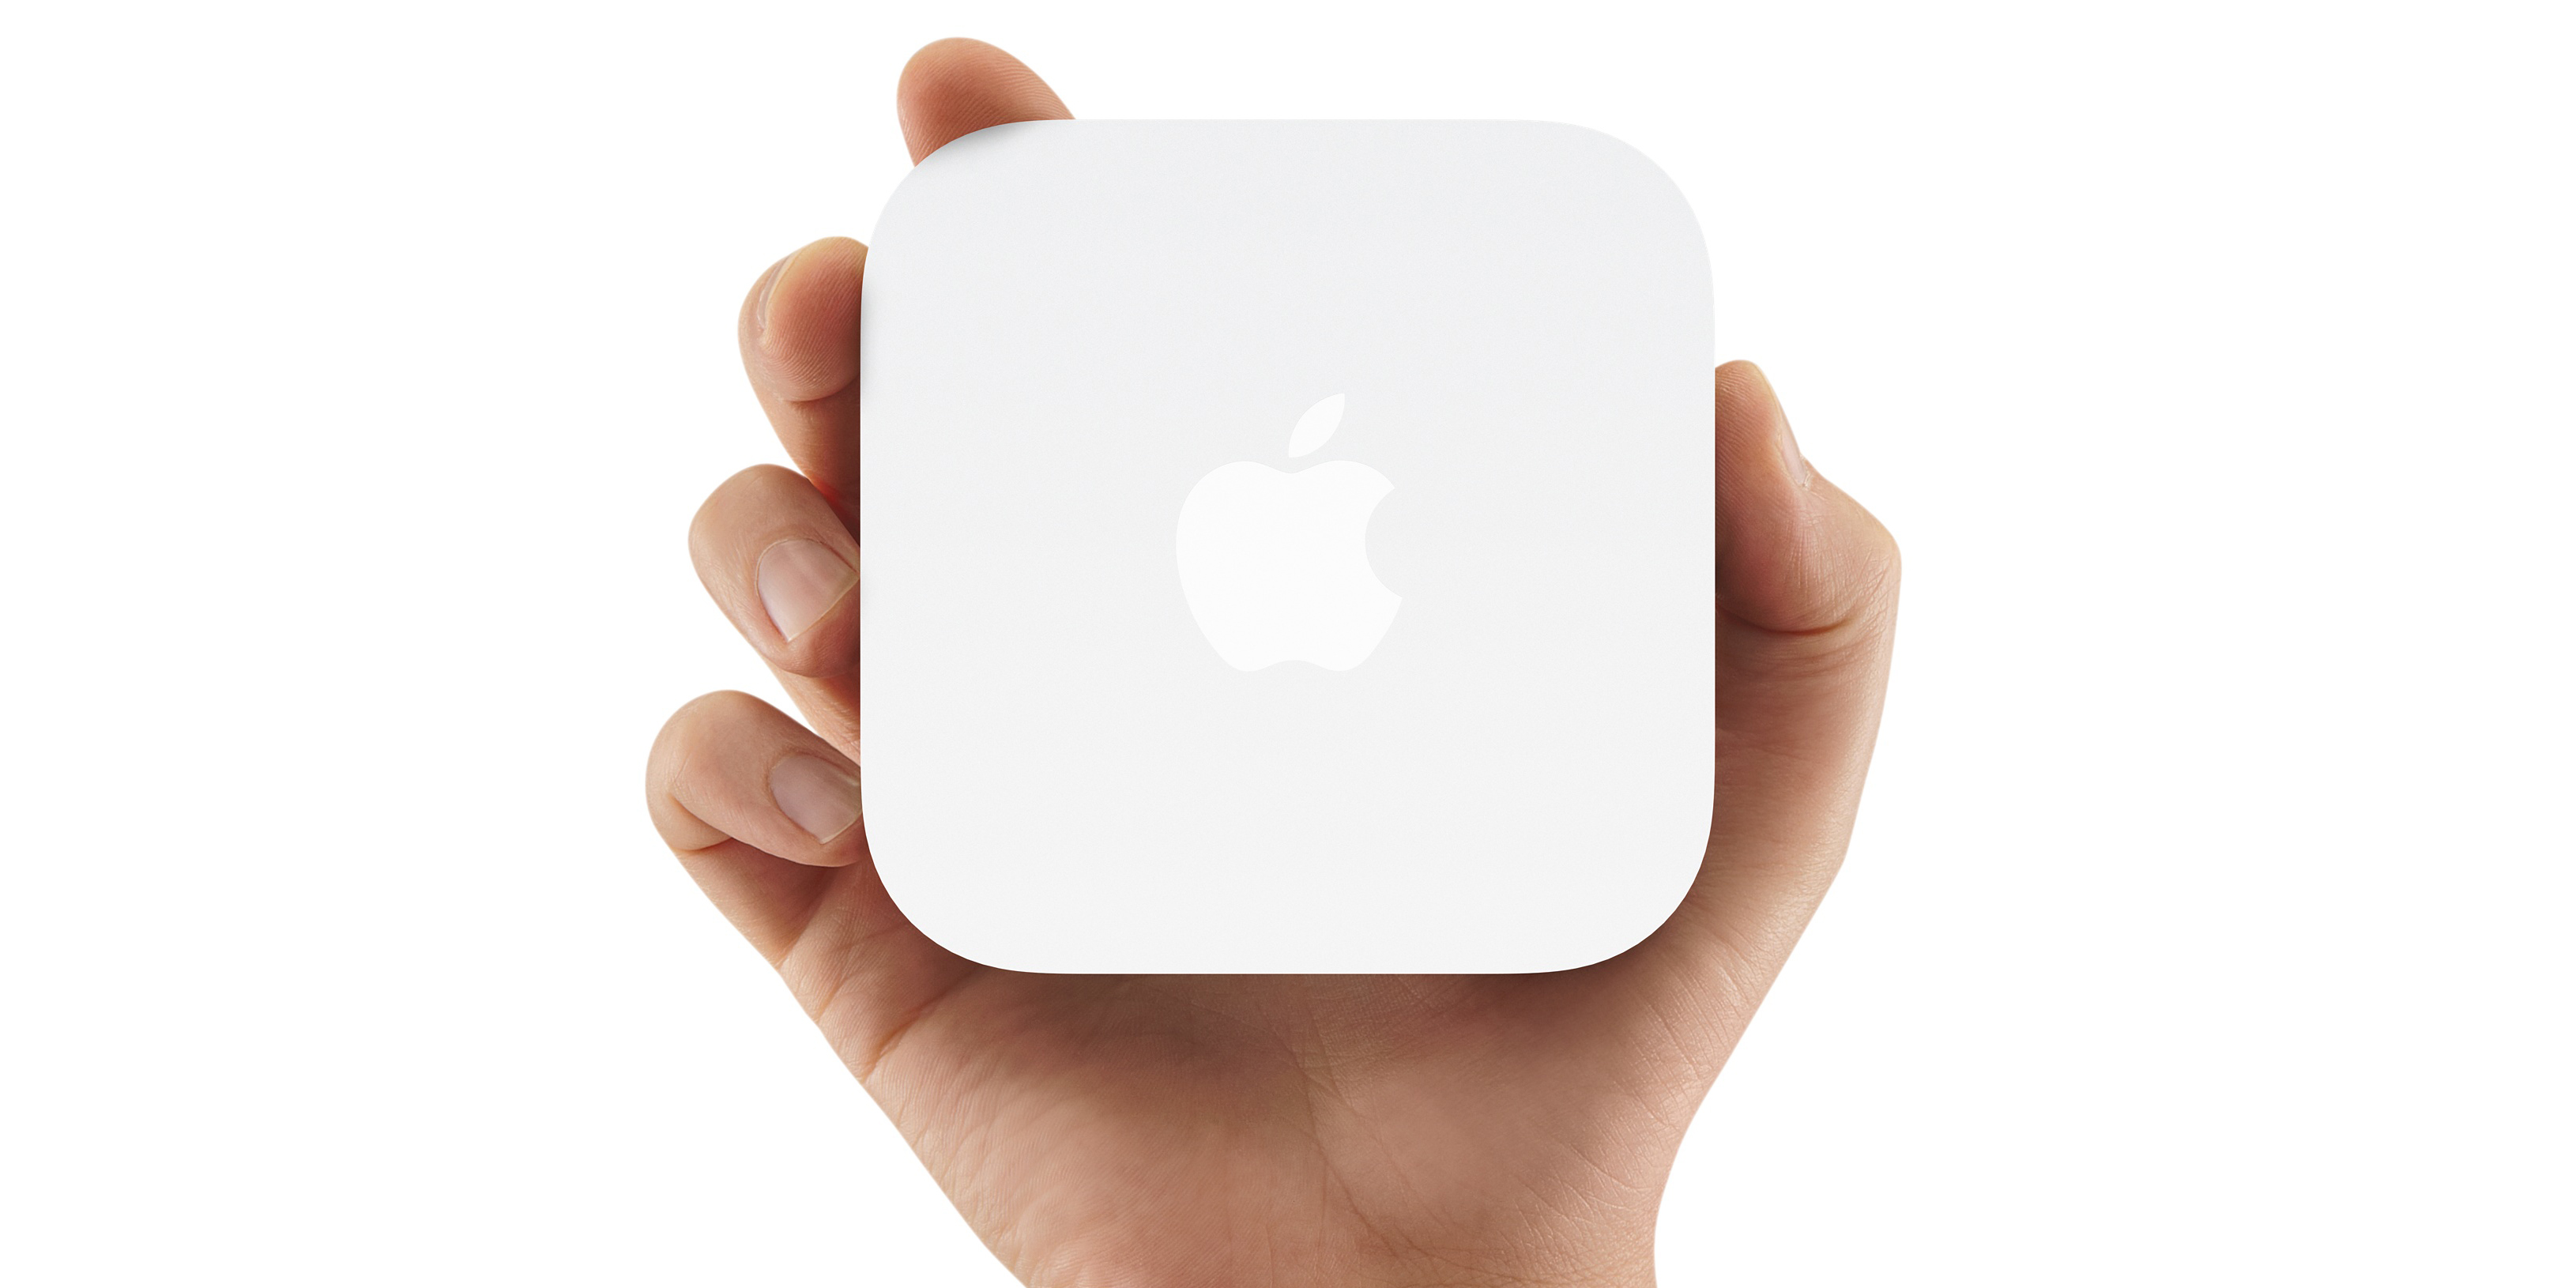 How to use AirPort Express for AirPlay 2 with existing router